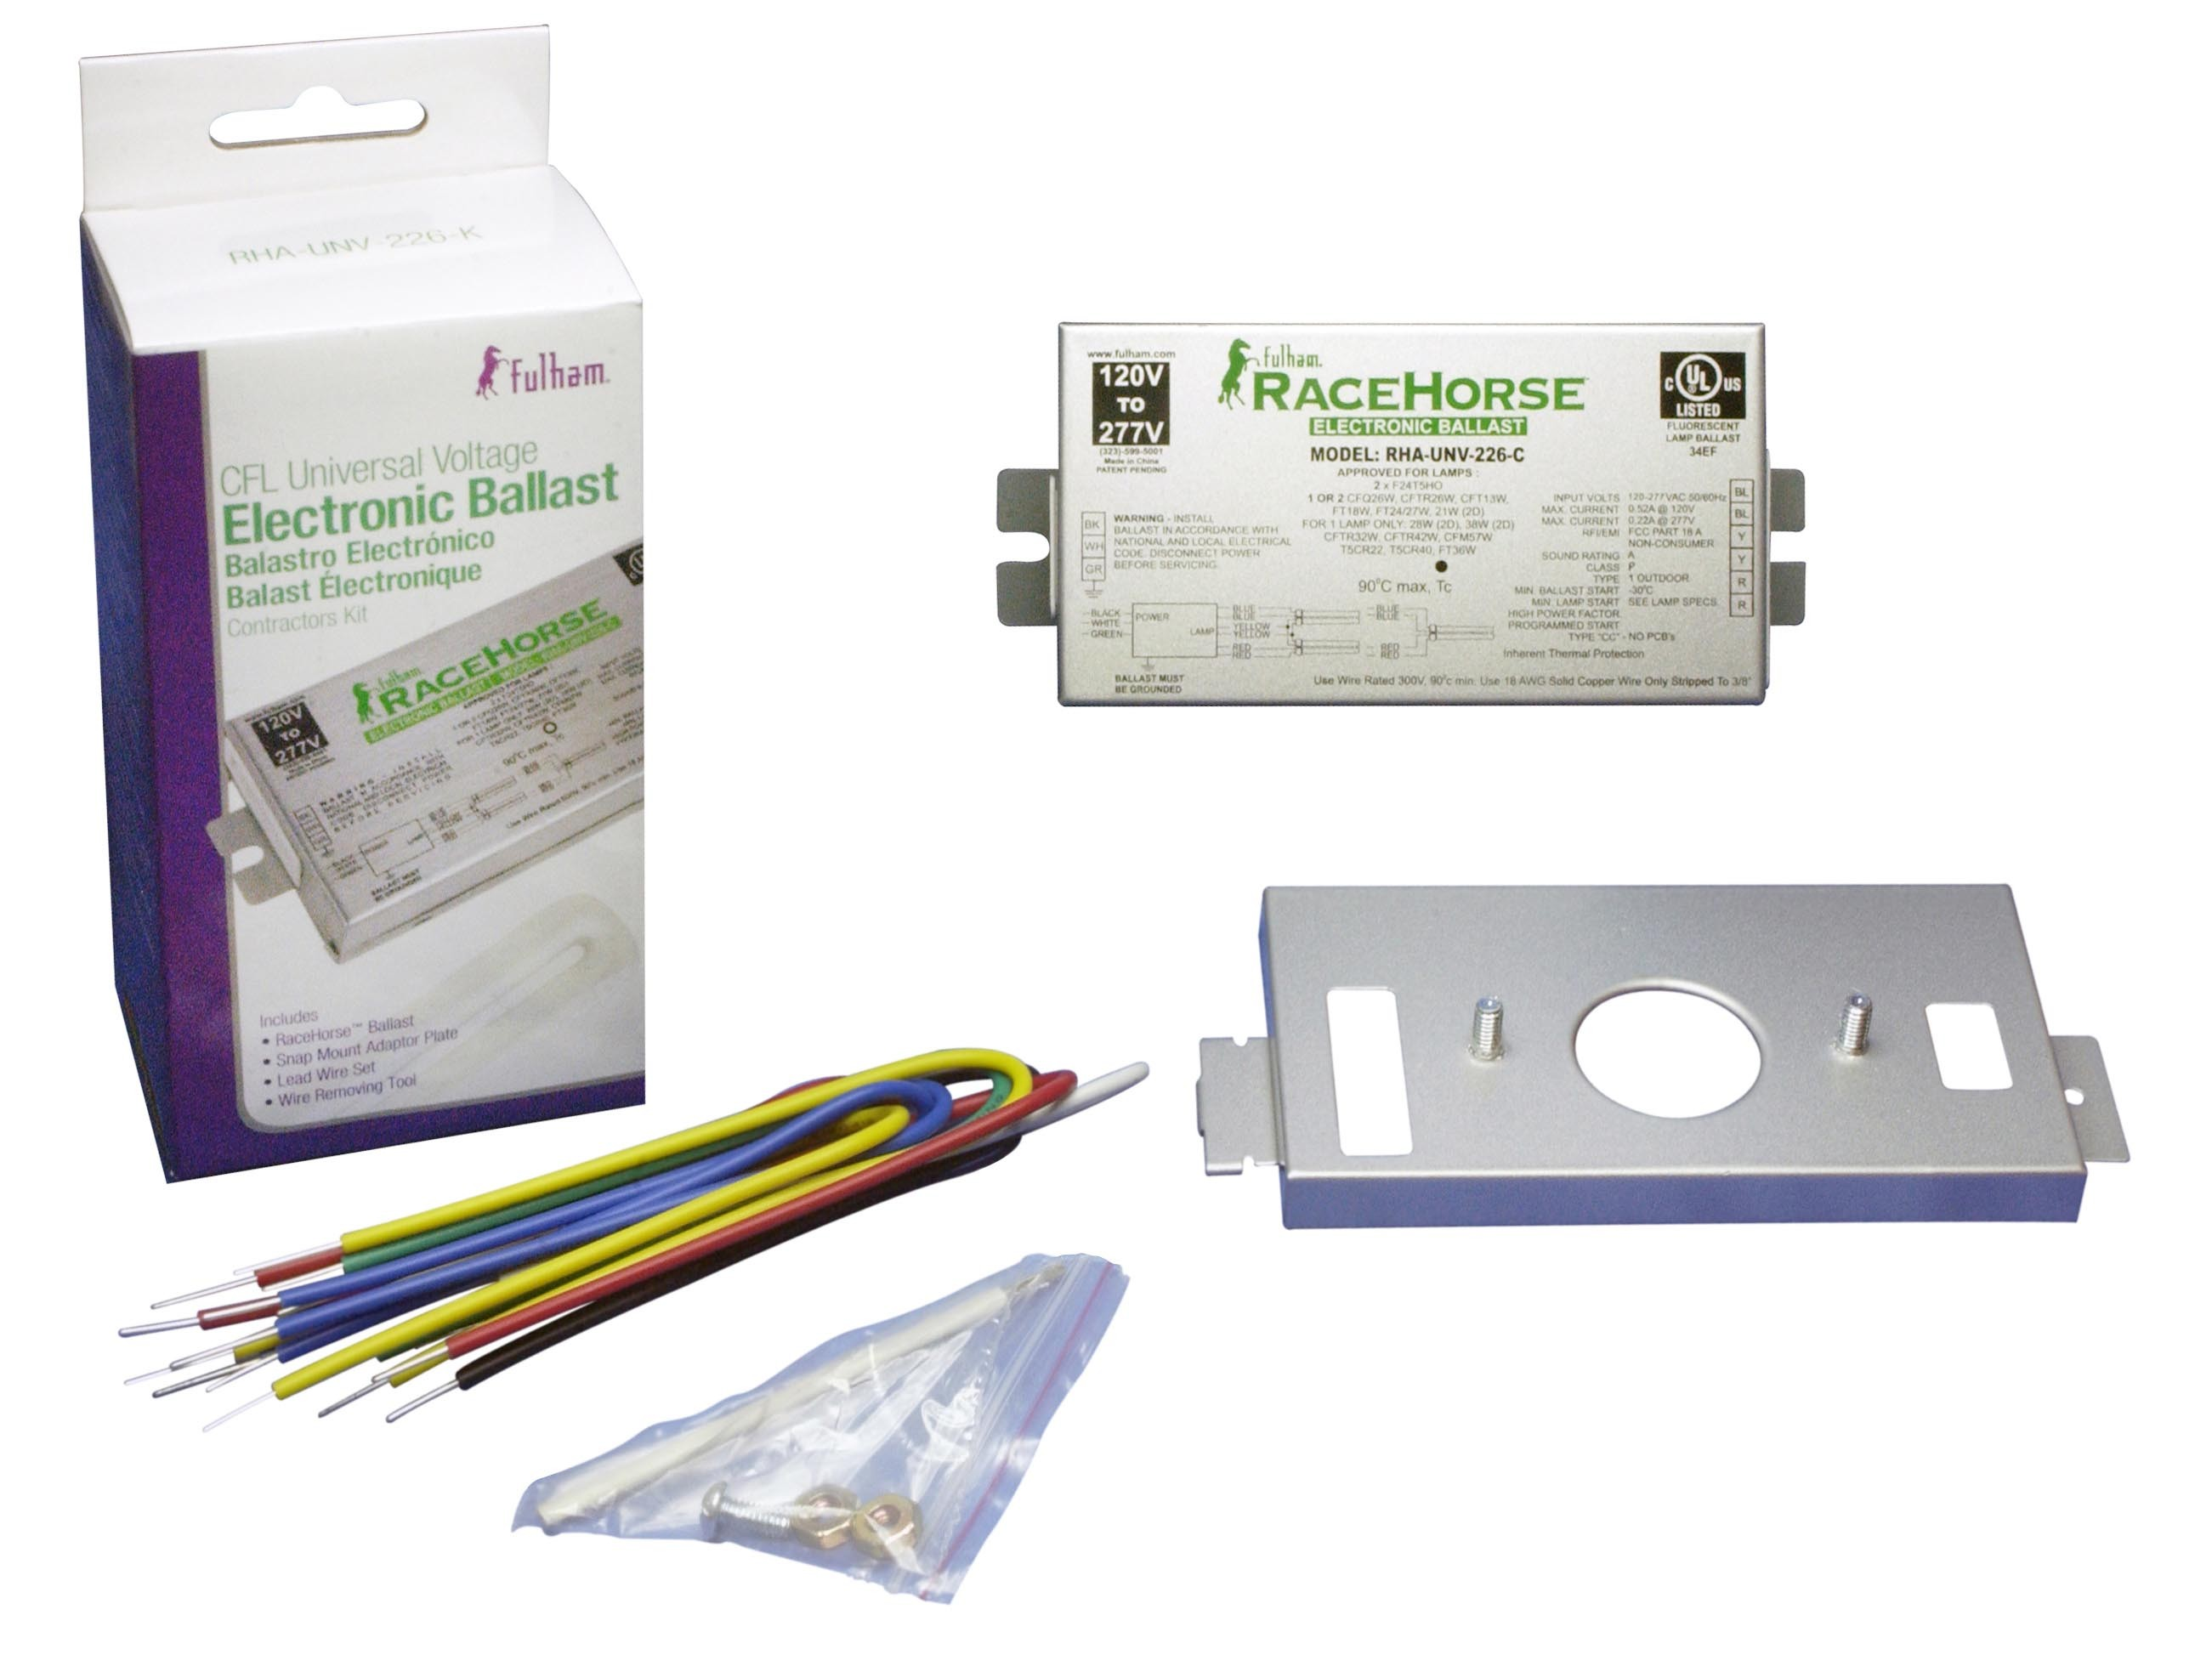 FULHAM RACE HORSE 3 CFL FLUORESCENT ELECTRONIC BALLAST CONTRACTOR KIT